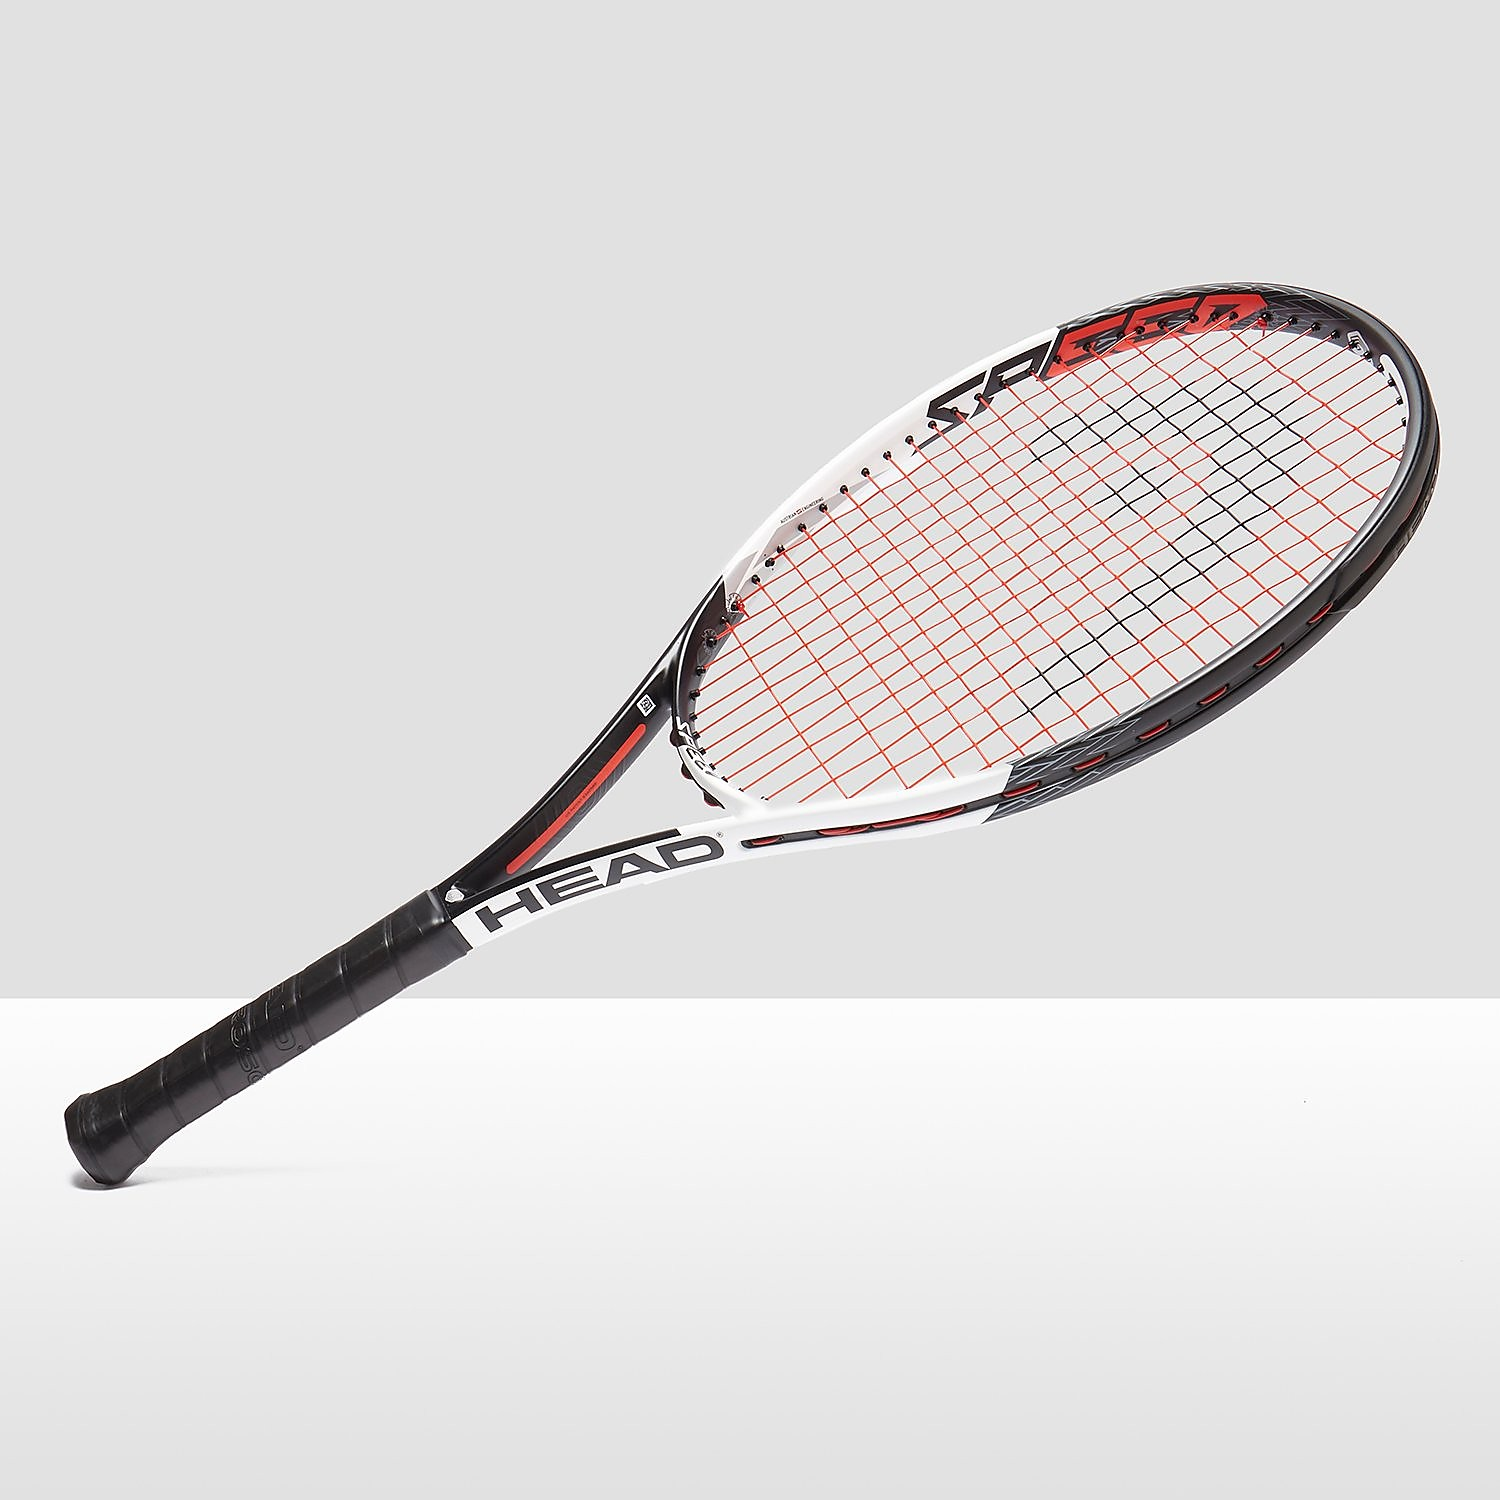 Head Graphene Touch Speed 26 Junior Tennis Racket